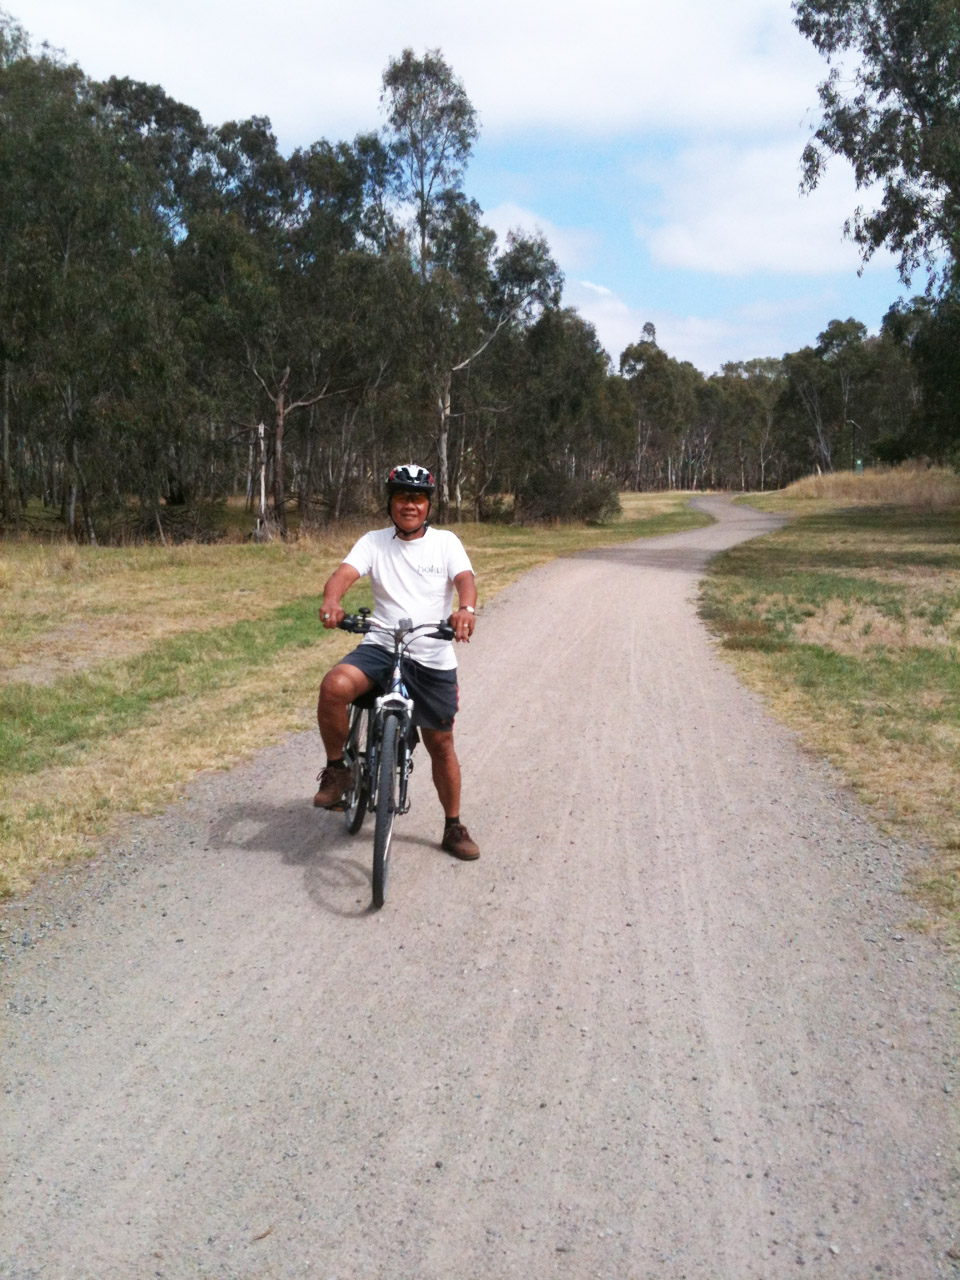 Riding in the Maribyrnong River valley.